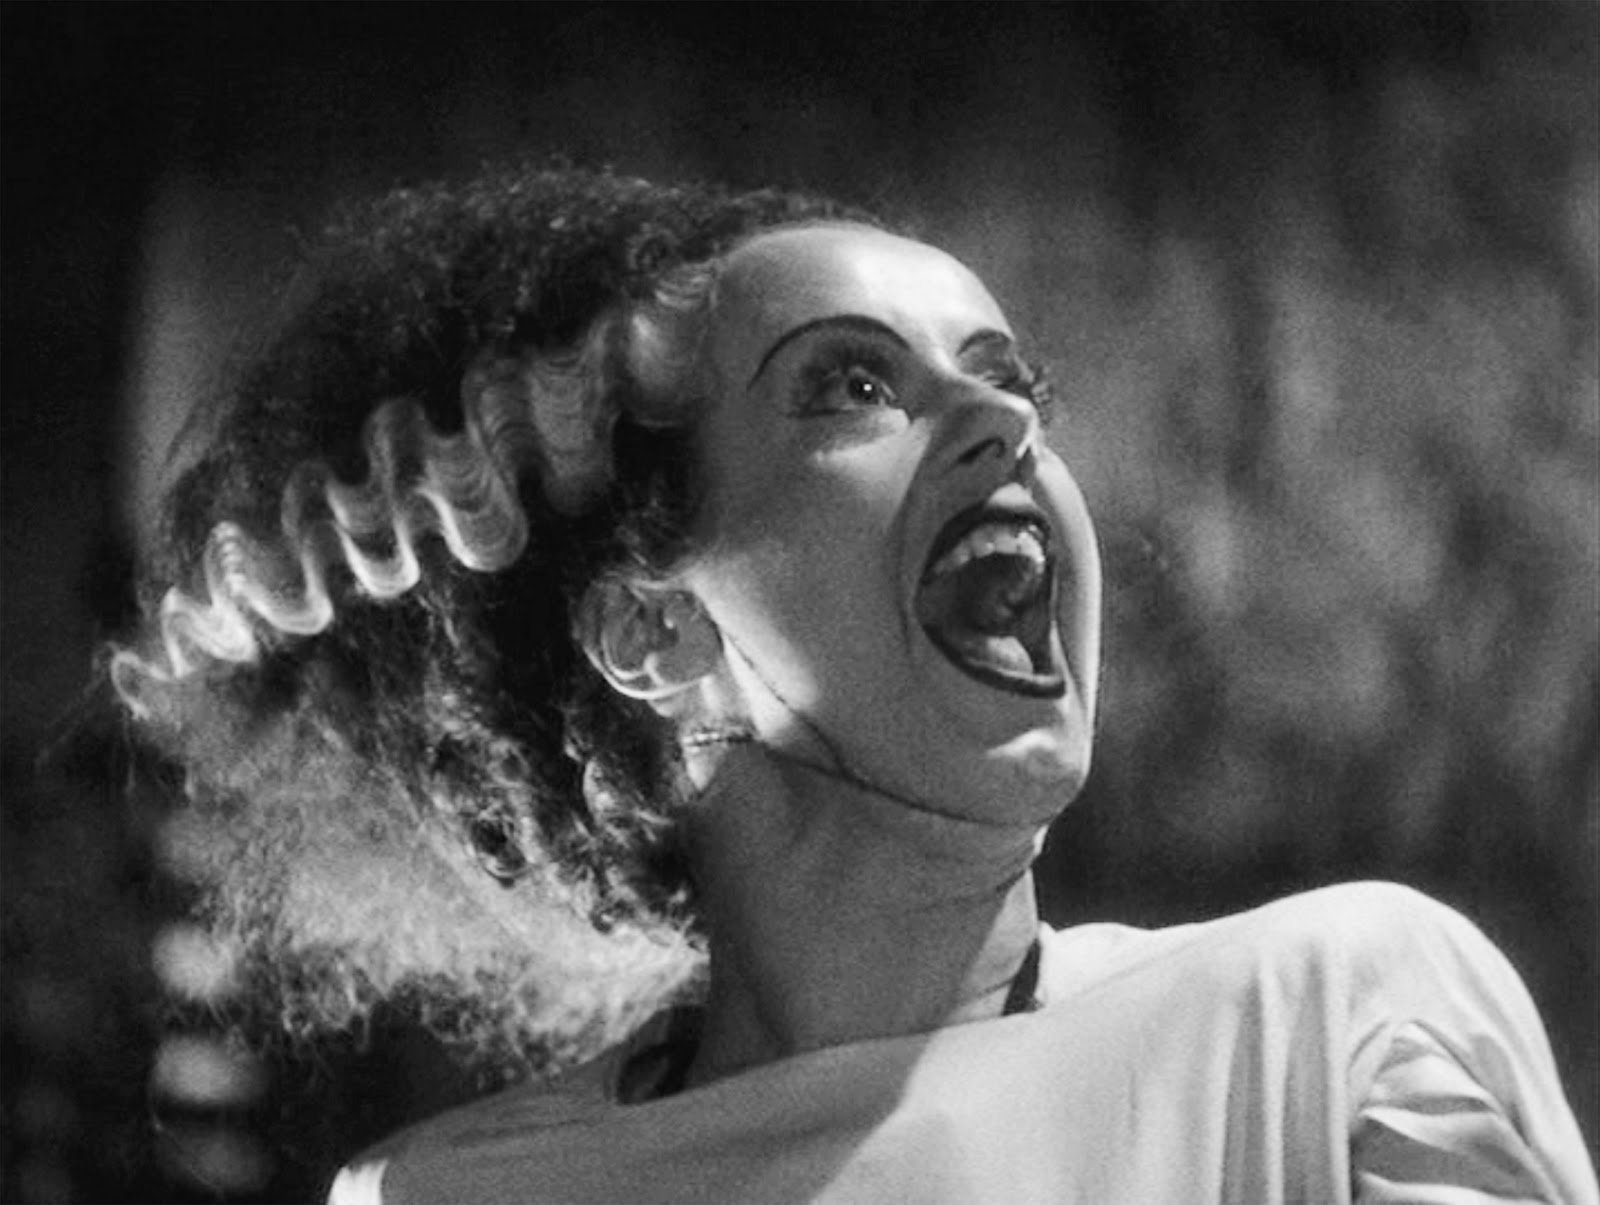 17. The Bride of Frankenstein